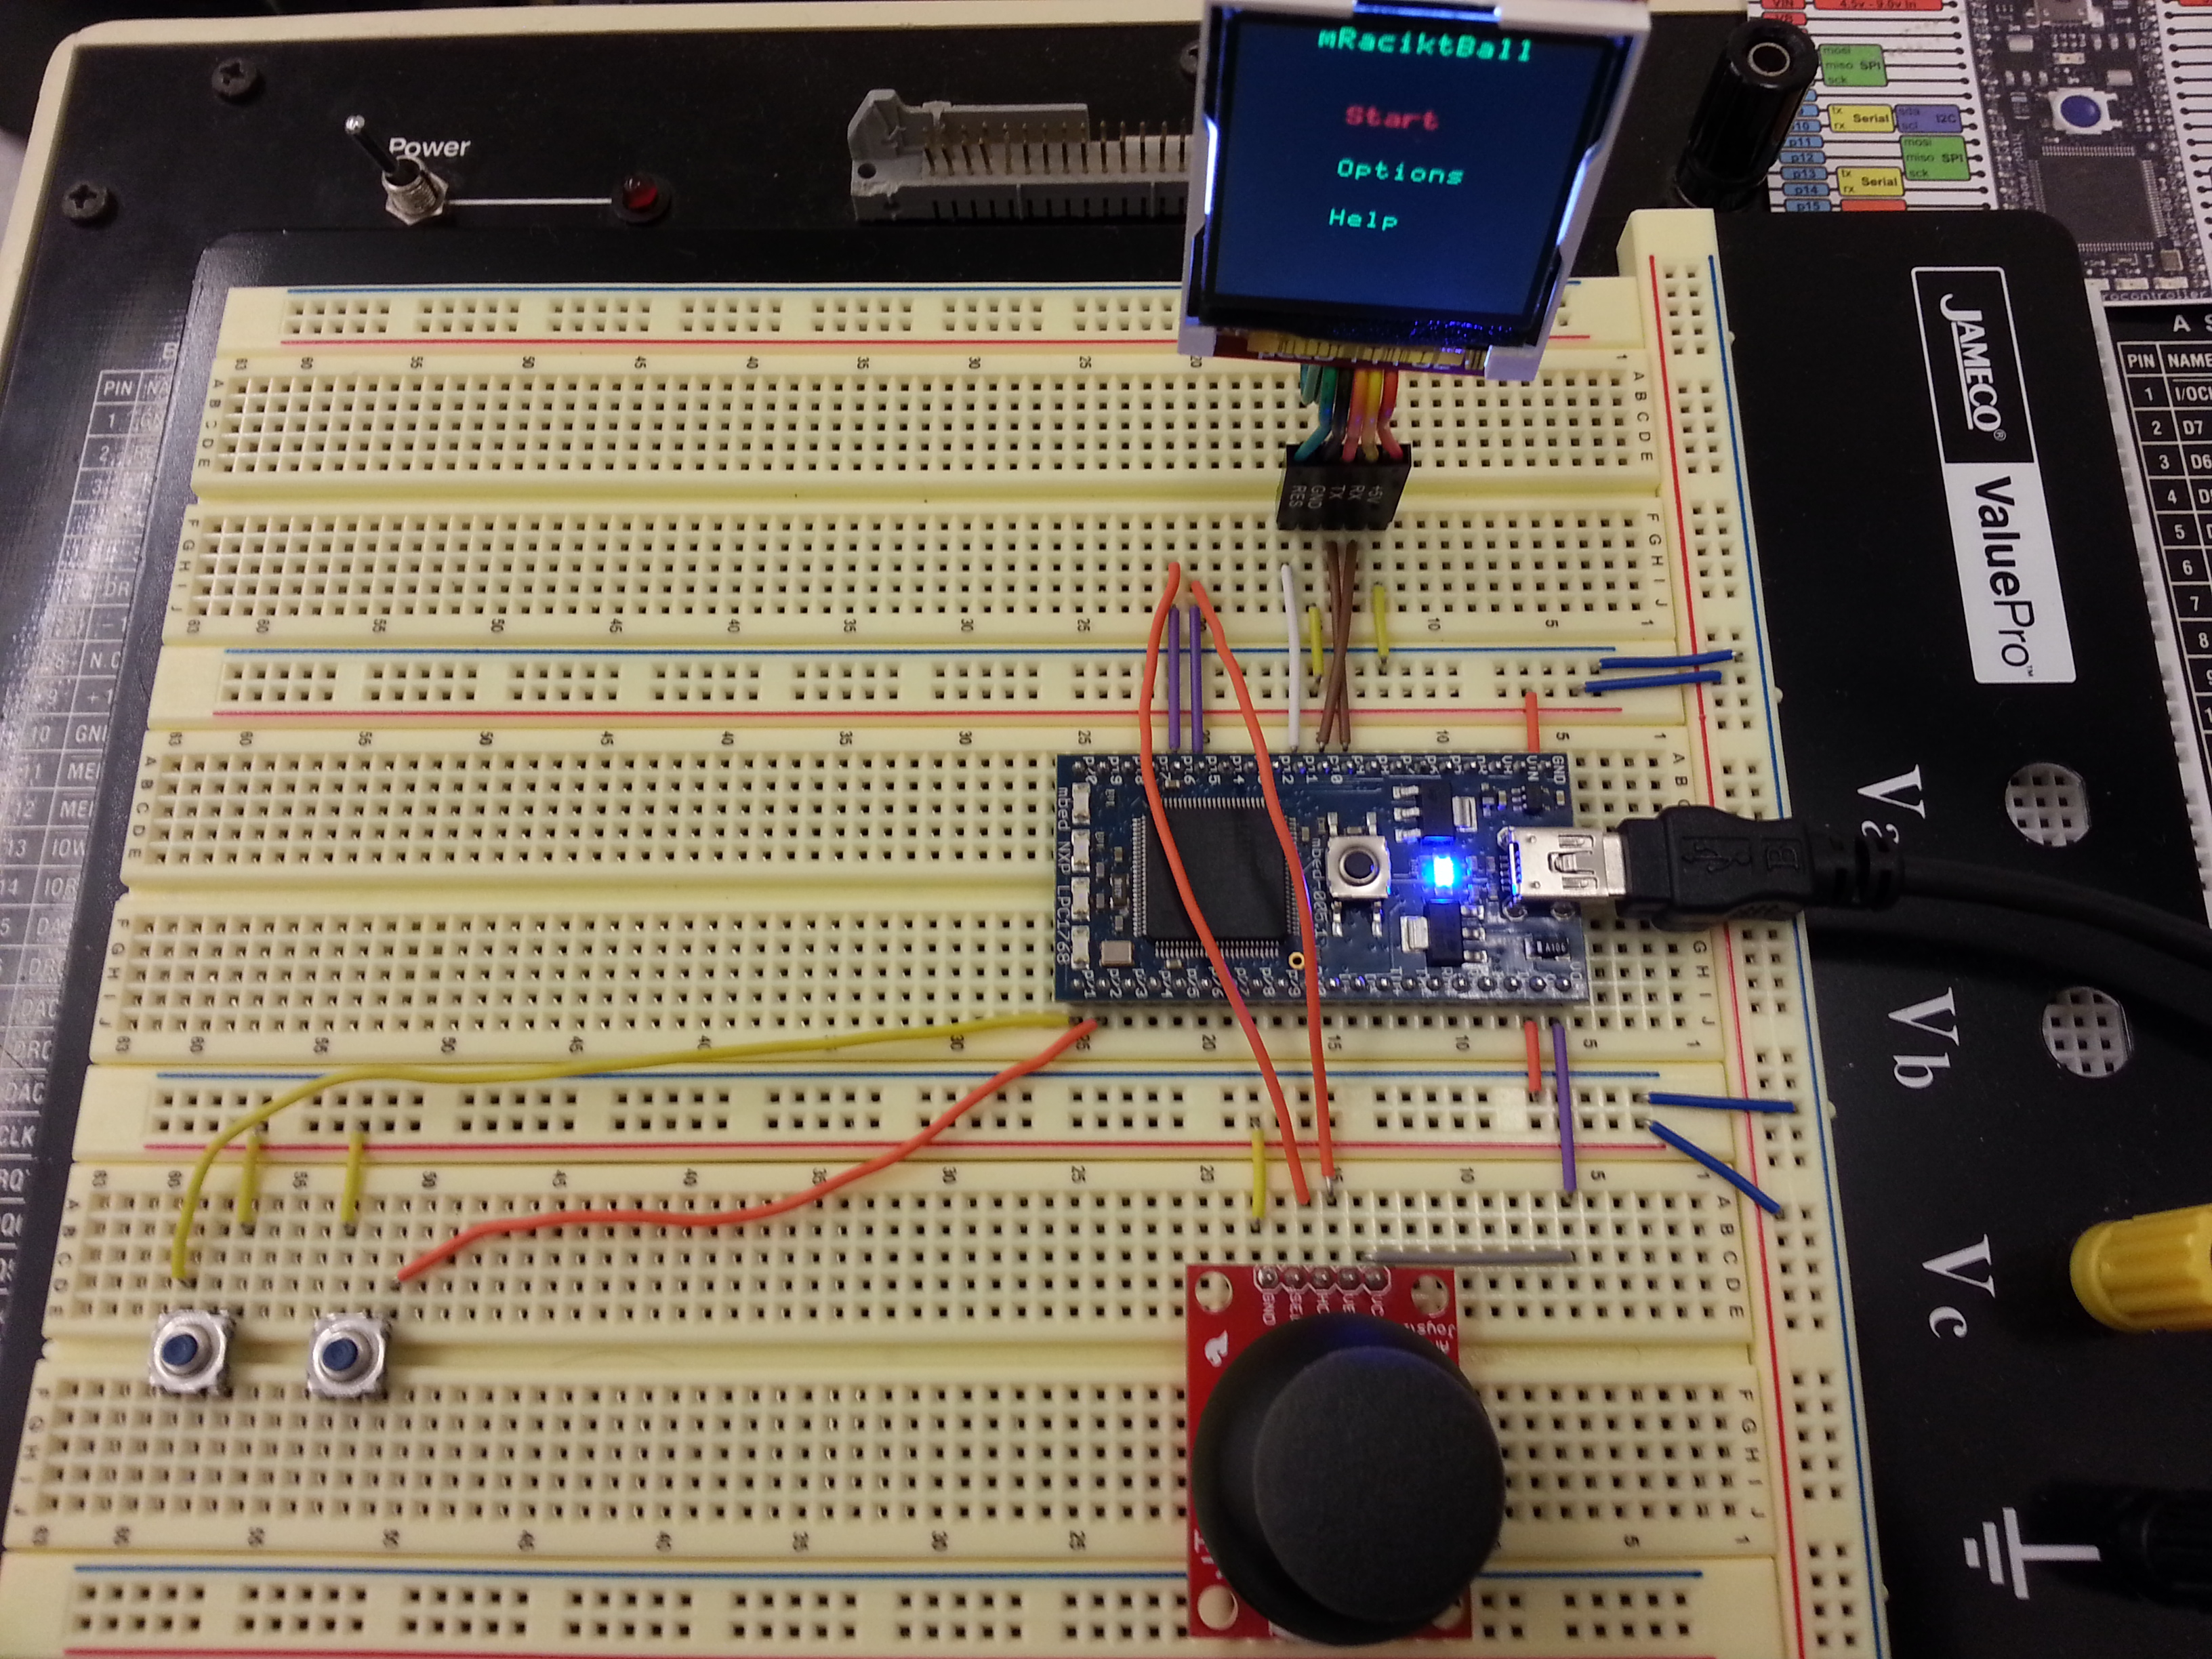 Student Projects Cookbook Mbed Module Fm Wireless Microphone Circuit Board Computer Audio Radio Mrackitball